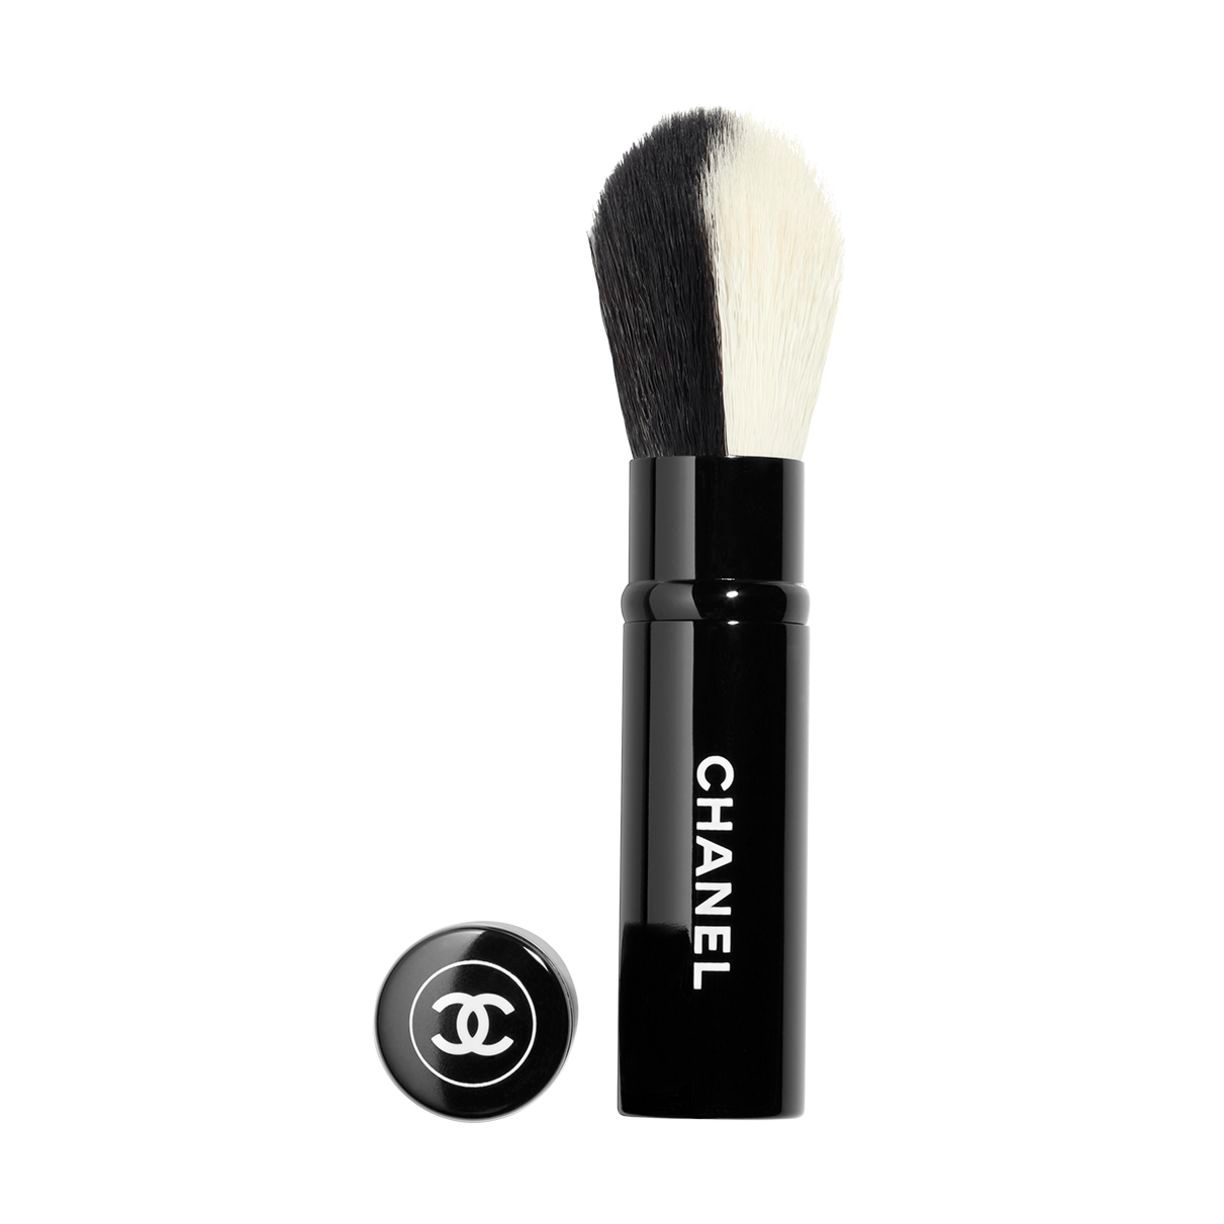 0580187a8b00 Makeup Brushes and Accessories CHANEL : Complexion Brushes - Eye...